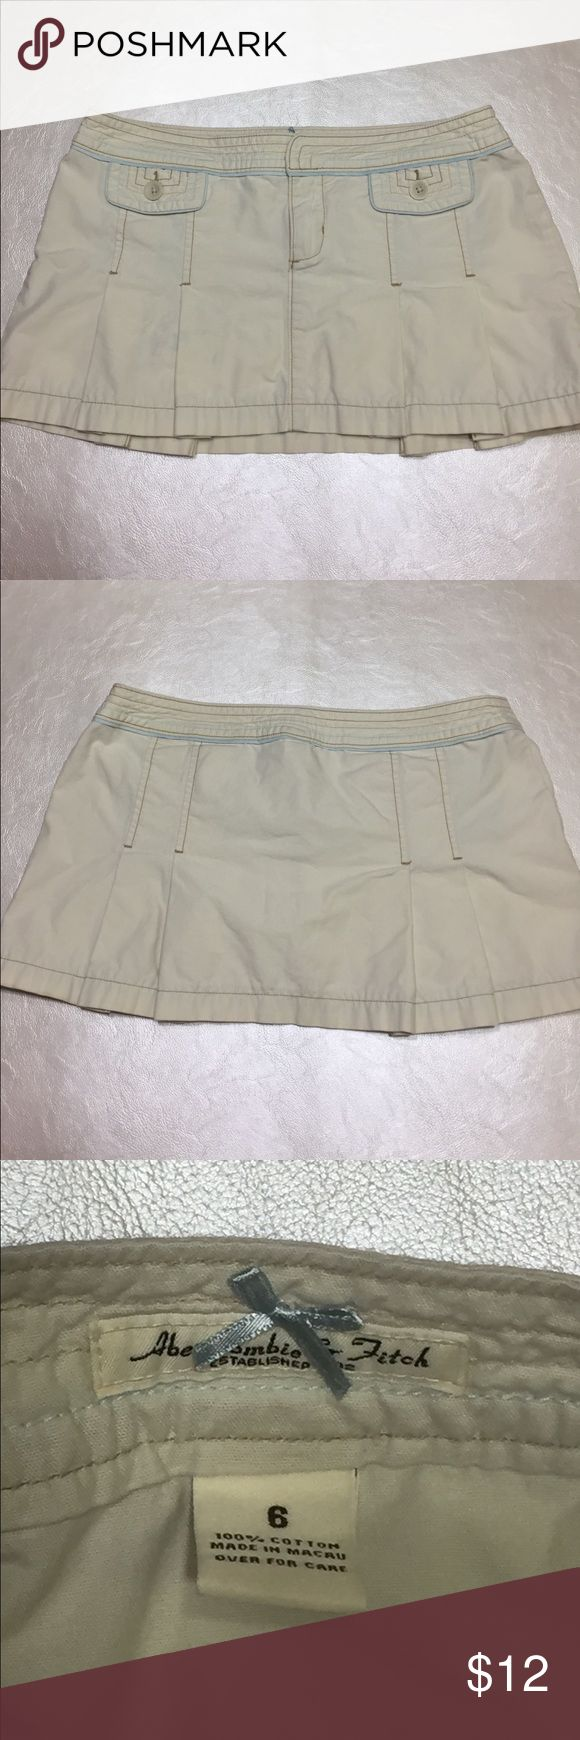 """Abercrombie and Fitch Pleated Miniskirt Cute and Casual! Pleated micromini with Khaki with Blue and Tan Accents and Two Front Pockets Width 36"""" Length 12"""" Abercrombie & Fitch Skirts Mini"""